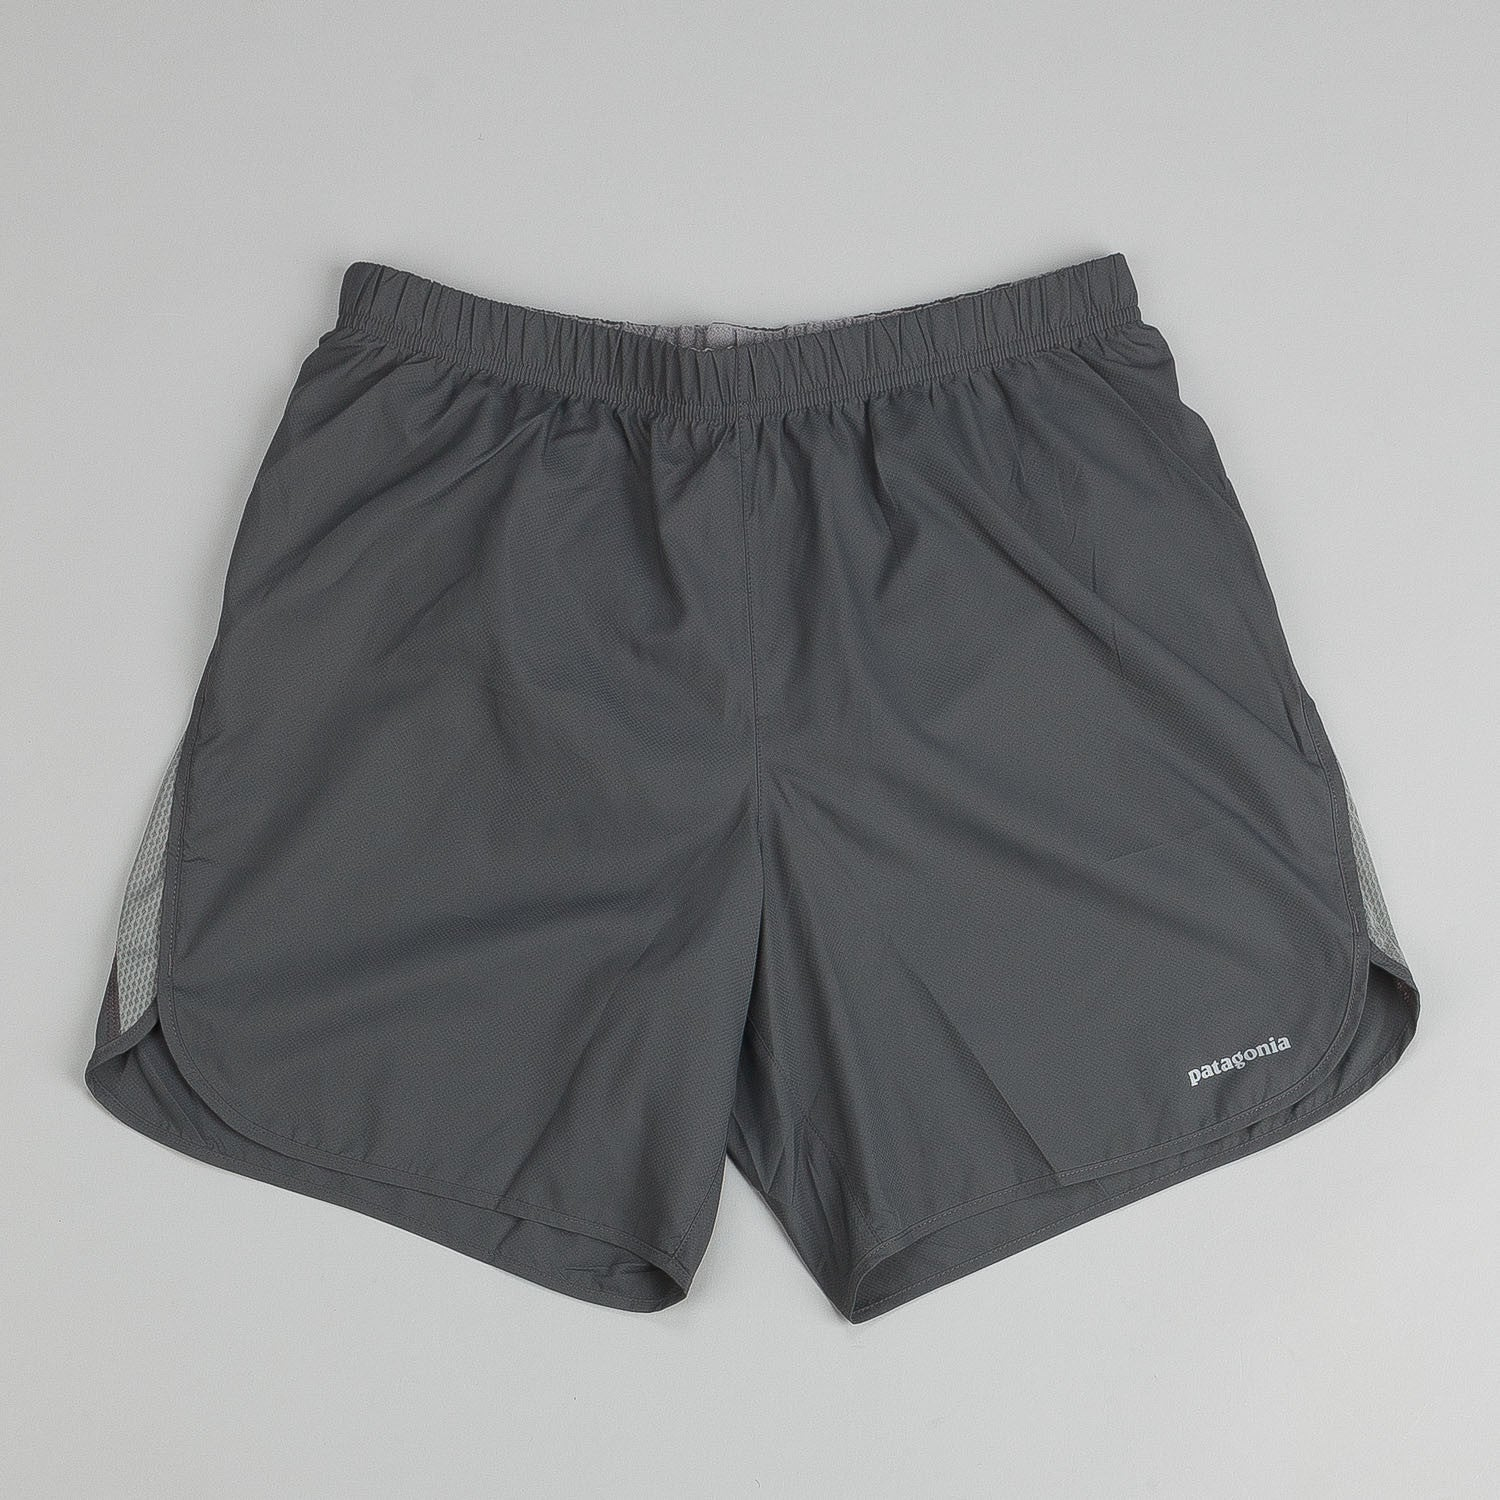 "Patagonia Strider Shorts 7"" - Forge Grey / Feather Grey"